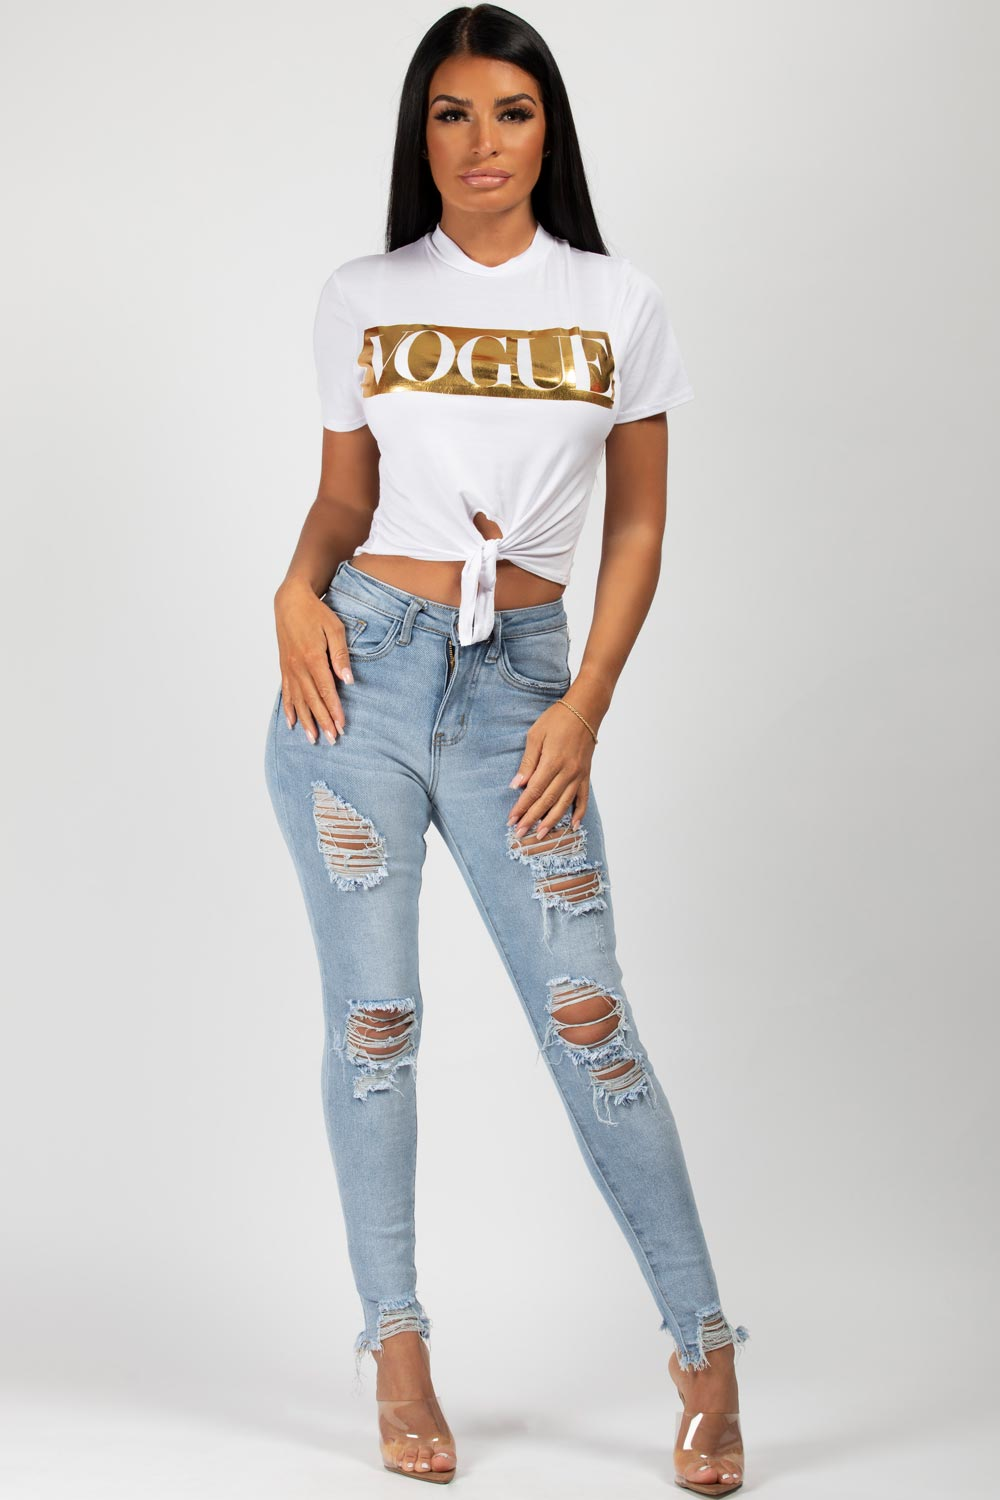 Vogue Slogan Crop Top